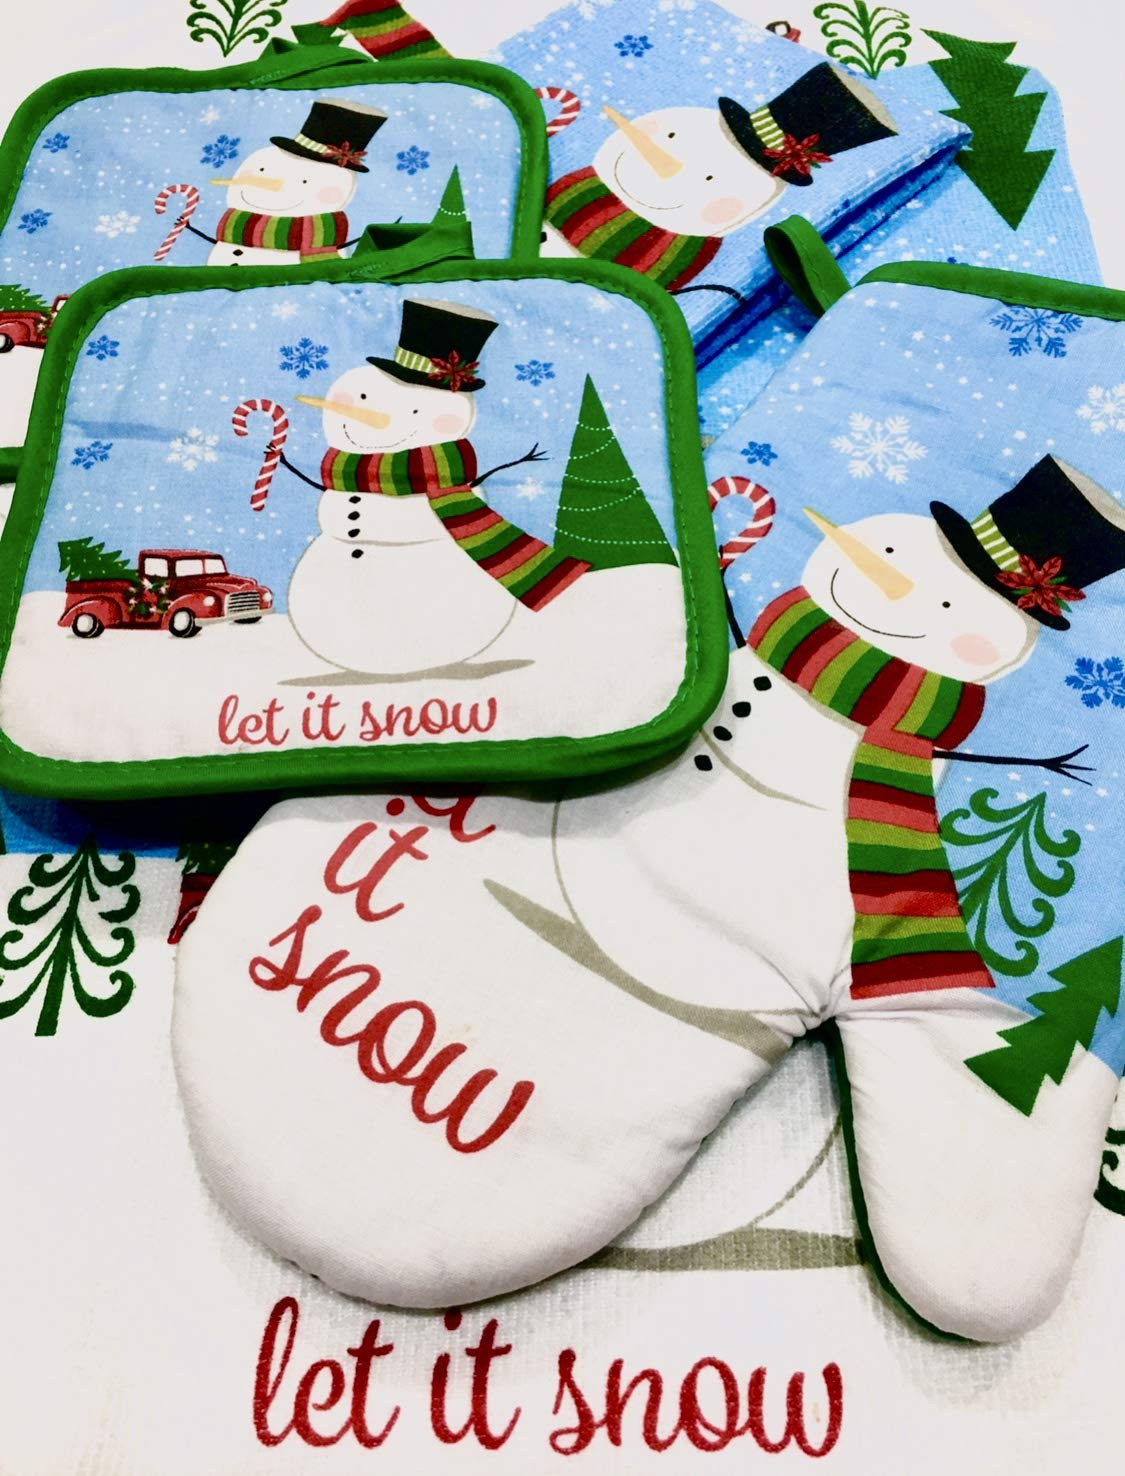 Holiday Kitchen Snowman and Old Red Truck(Let it Snow) Decor Towel Set with Pot Holder Oven Mitt and Bonus 1 Self Adhesive Gift Tag Stickers Best Xmas Idea for Gift and Decoration